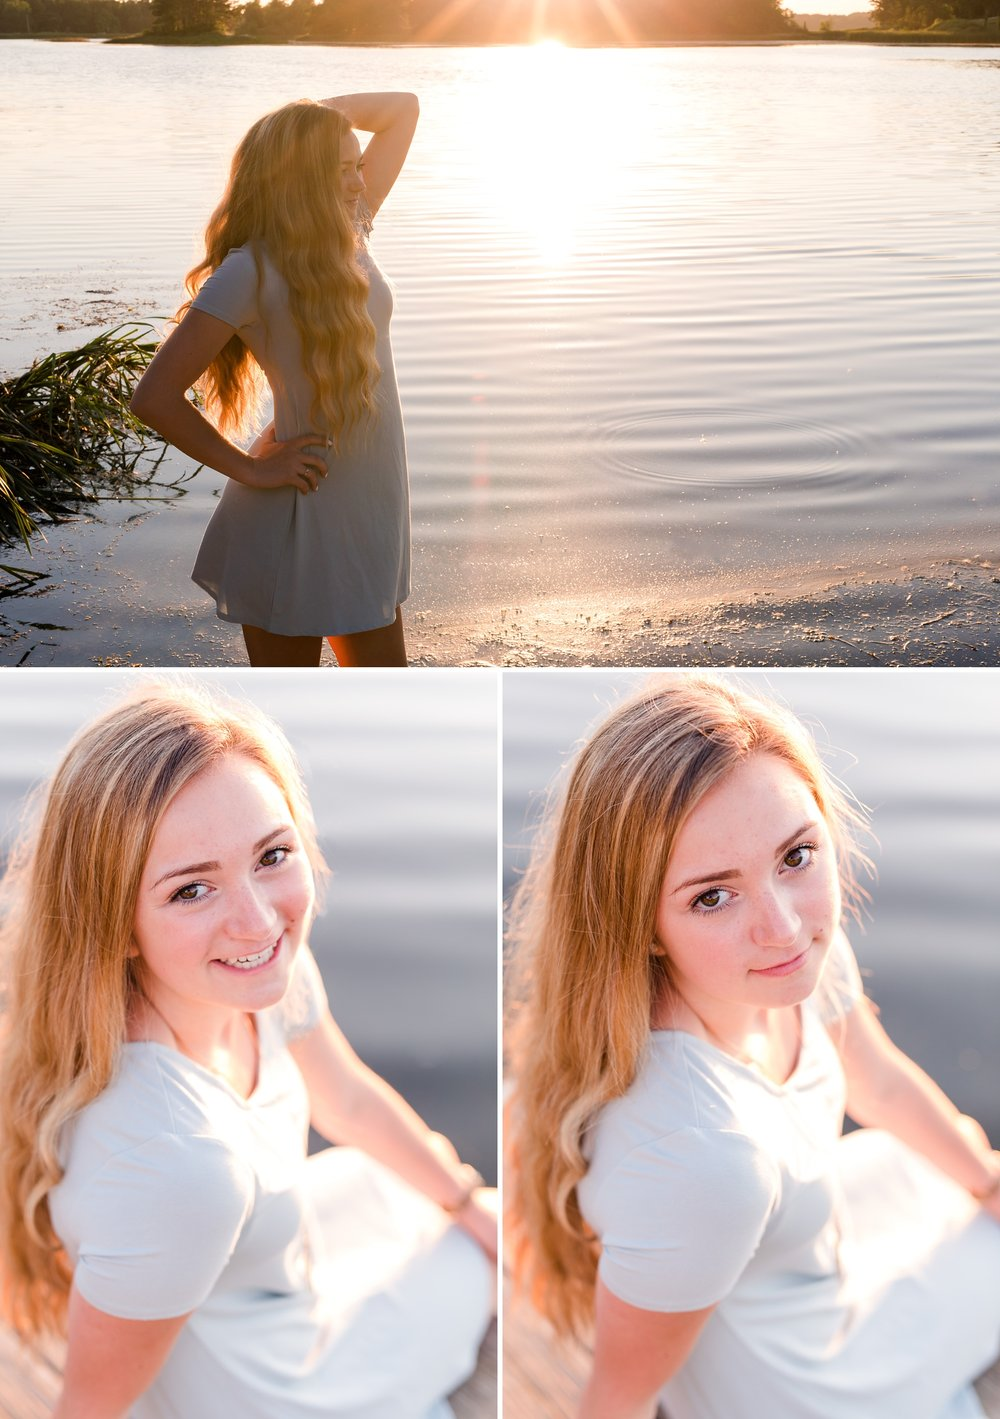 Country Styled High School Senior Pictures on a Farm and Little Cormorant Lake in Minnesota by Amber Langerud with a sunset on the lake